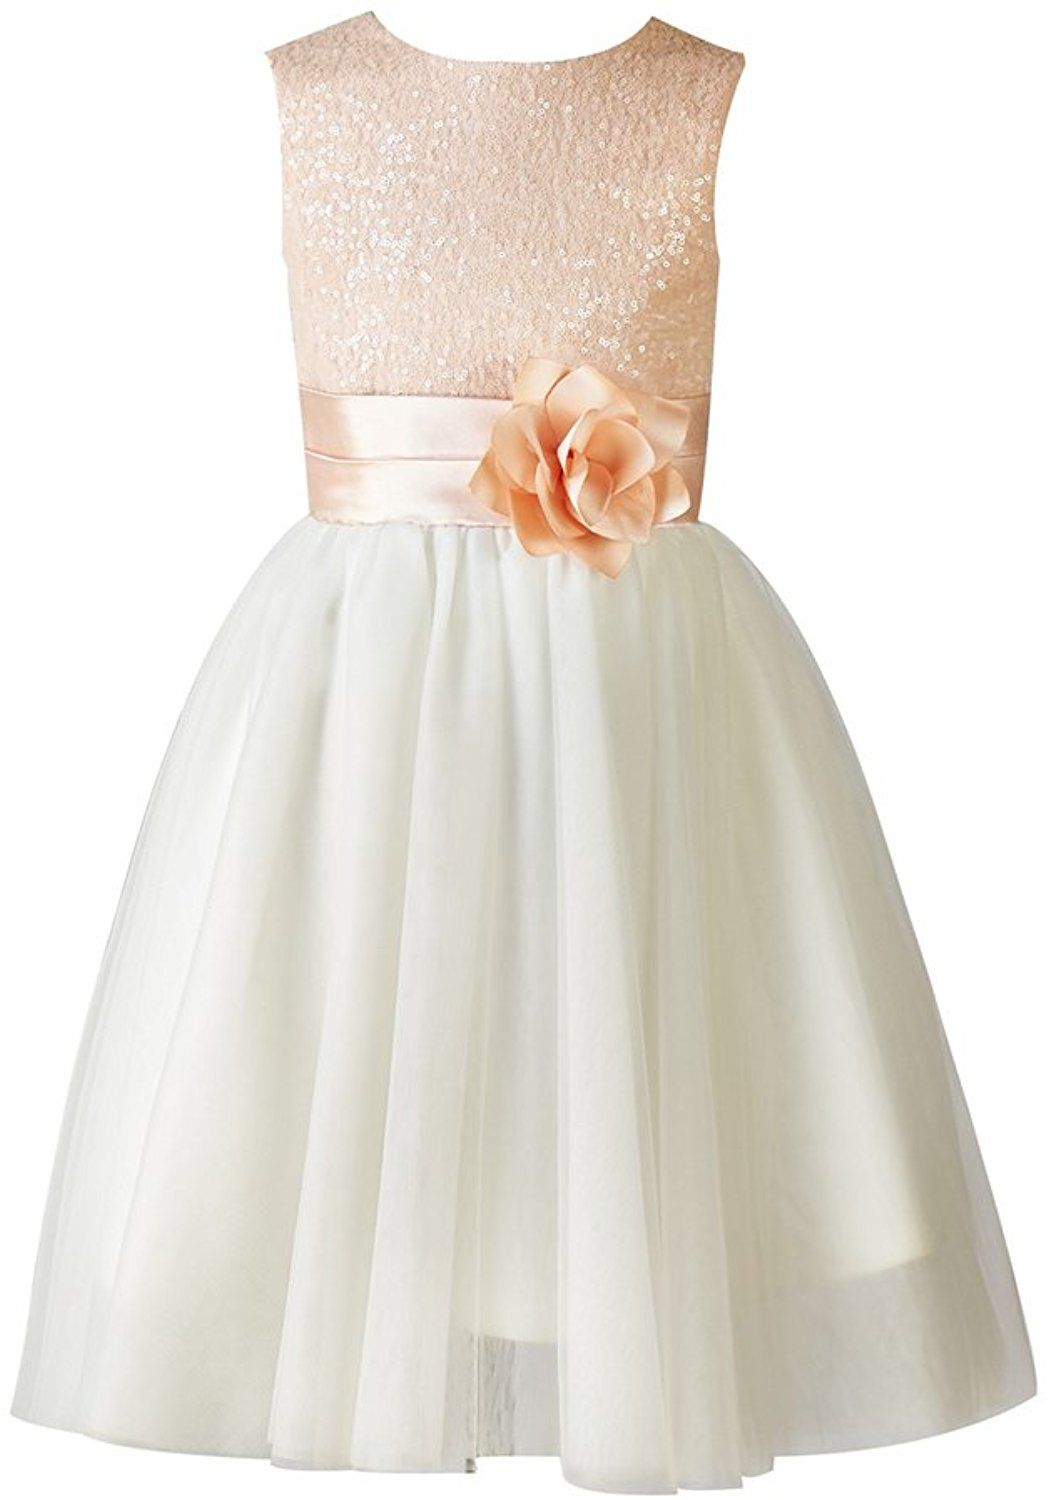 7b98f8abaa3 Amazon.com  Thstylee Girl s Sequin Tulle Flower Girl Dress Junior  Bridesmaid Dress 12T Blush Pink  Clothing